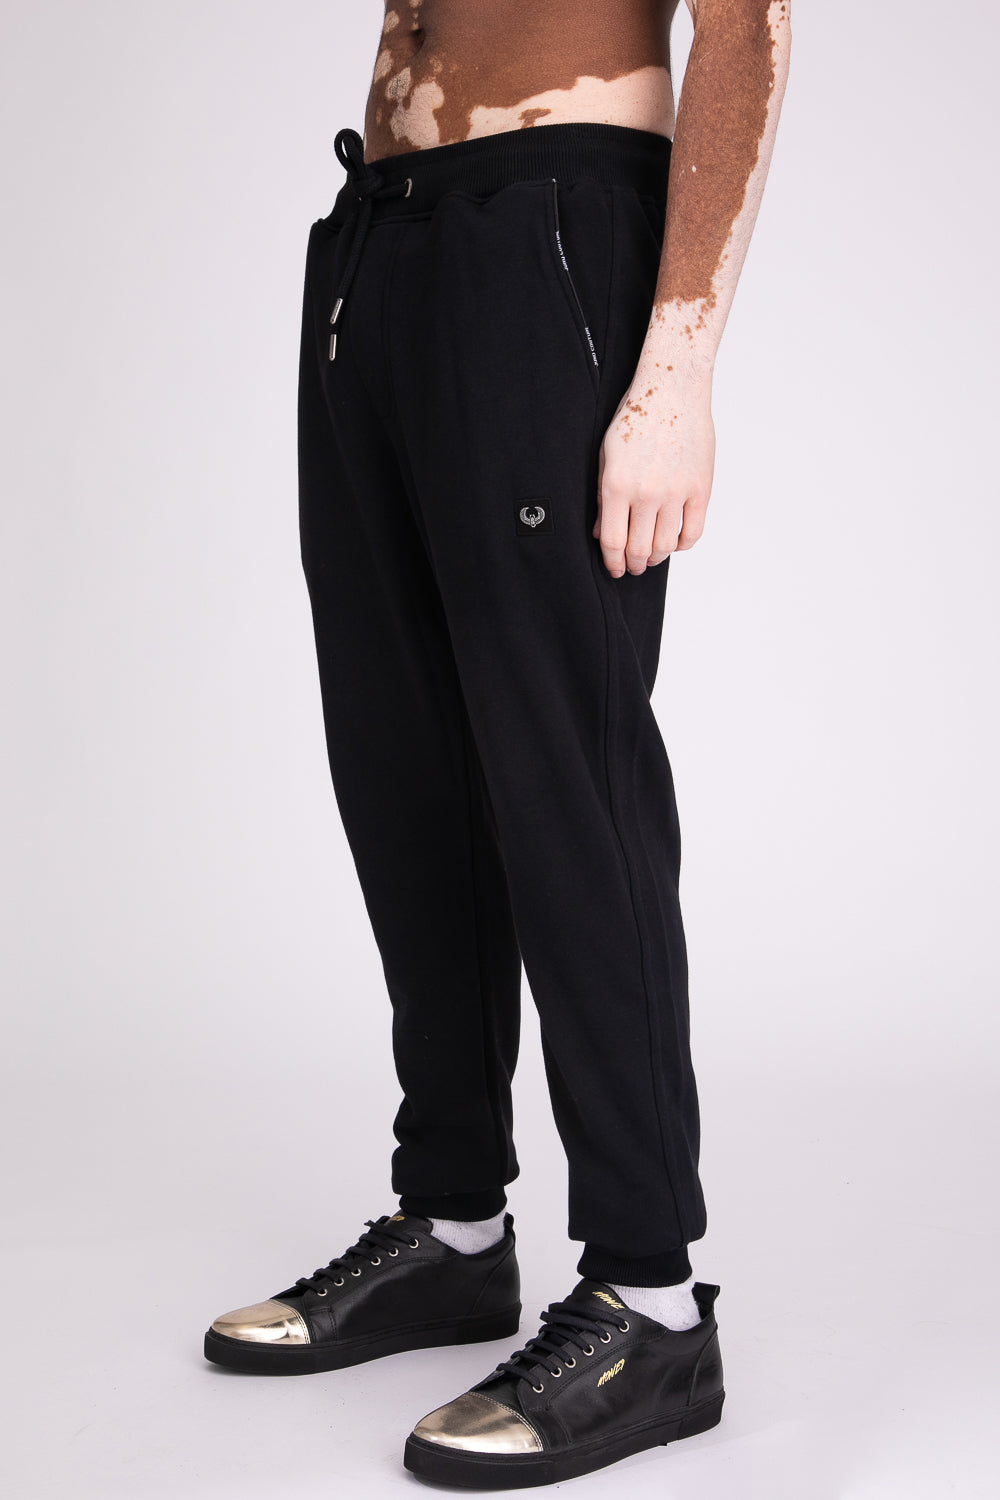 Style: Bricklane Basic Black Jogger - Junq Couture